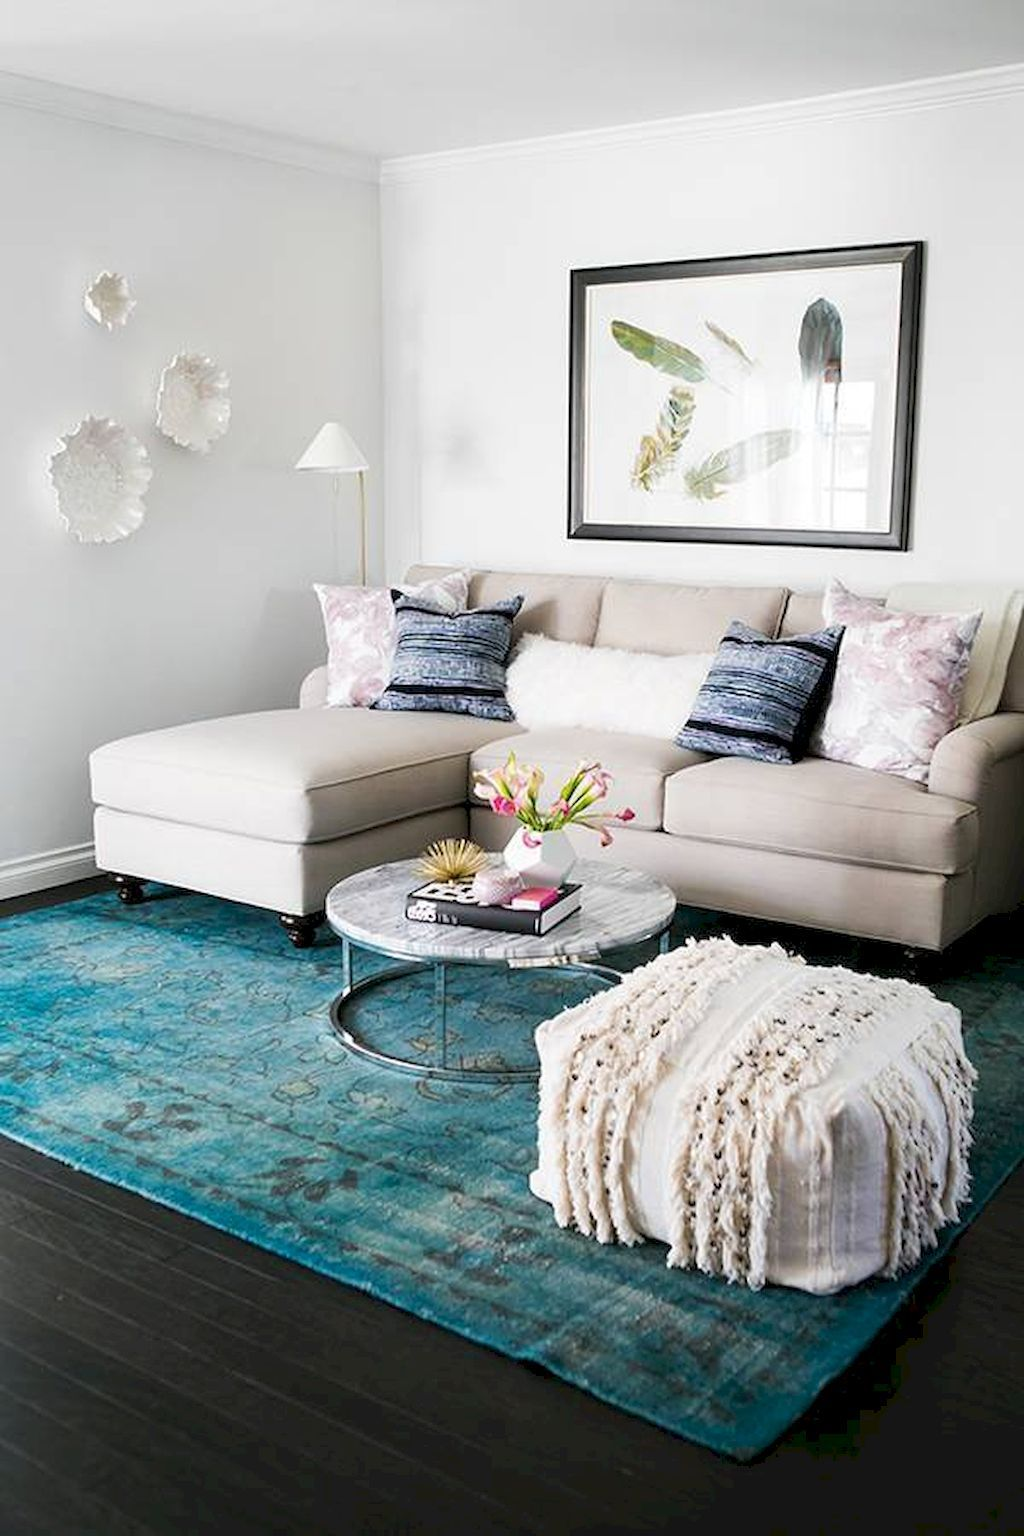 75 Small Apartment Living Room Decorating Ideas on A Budget ...